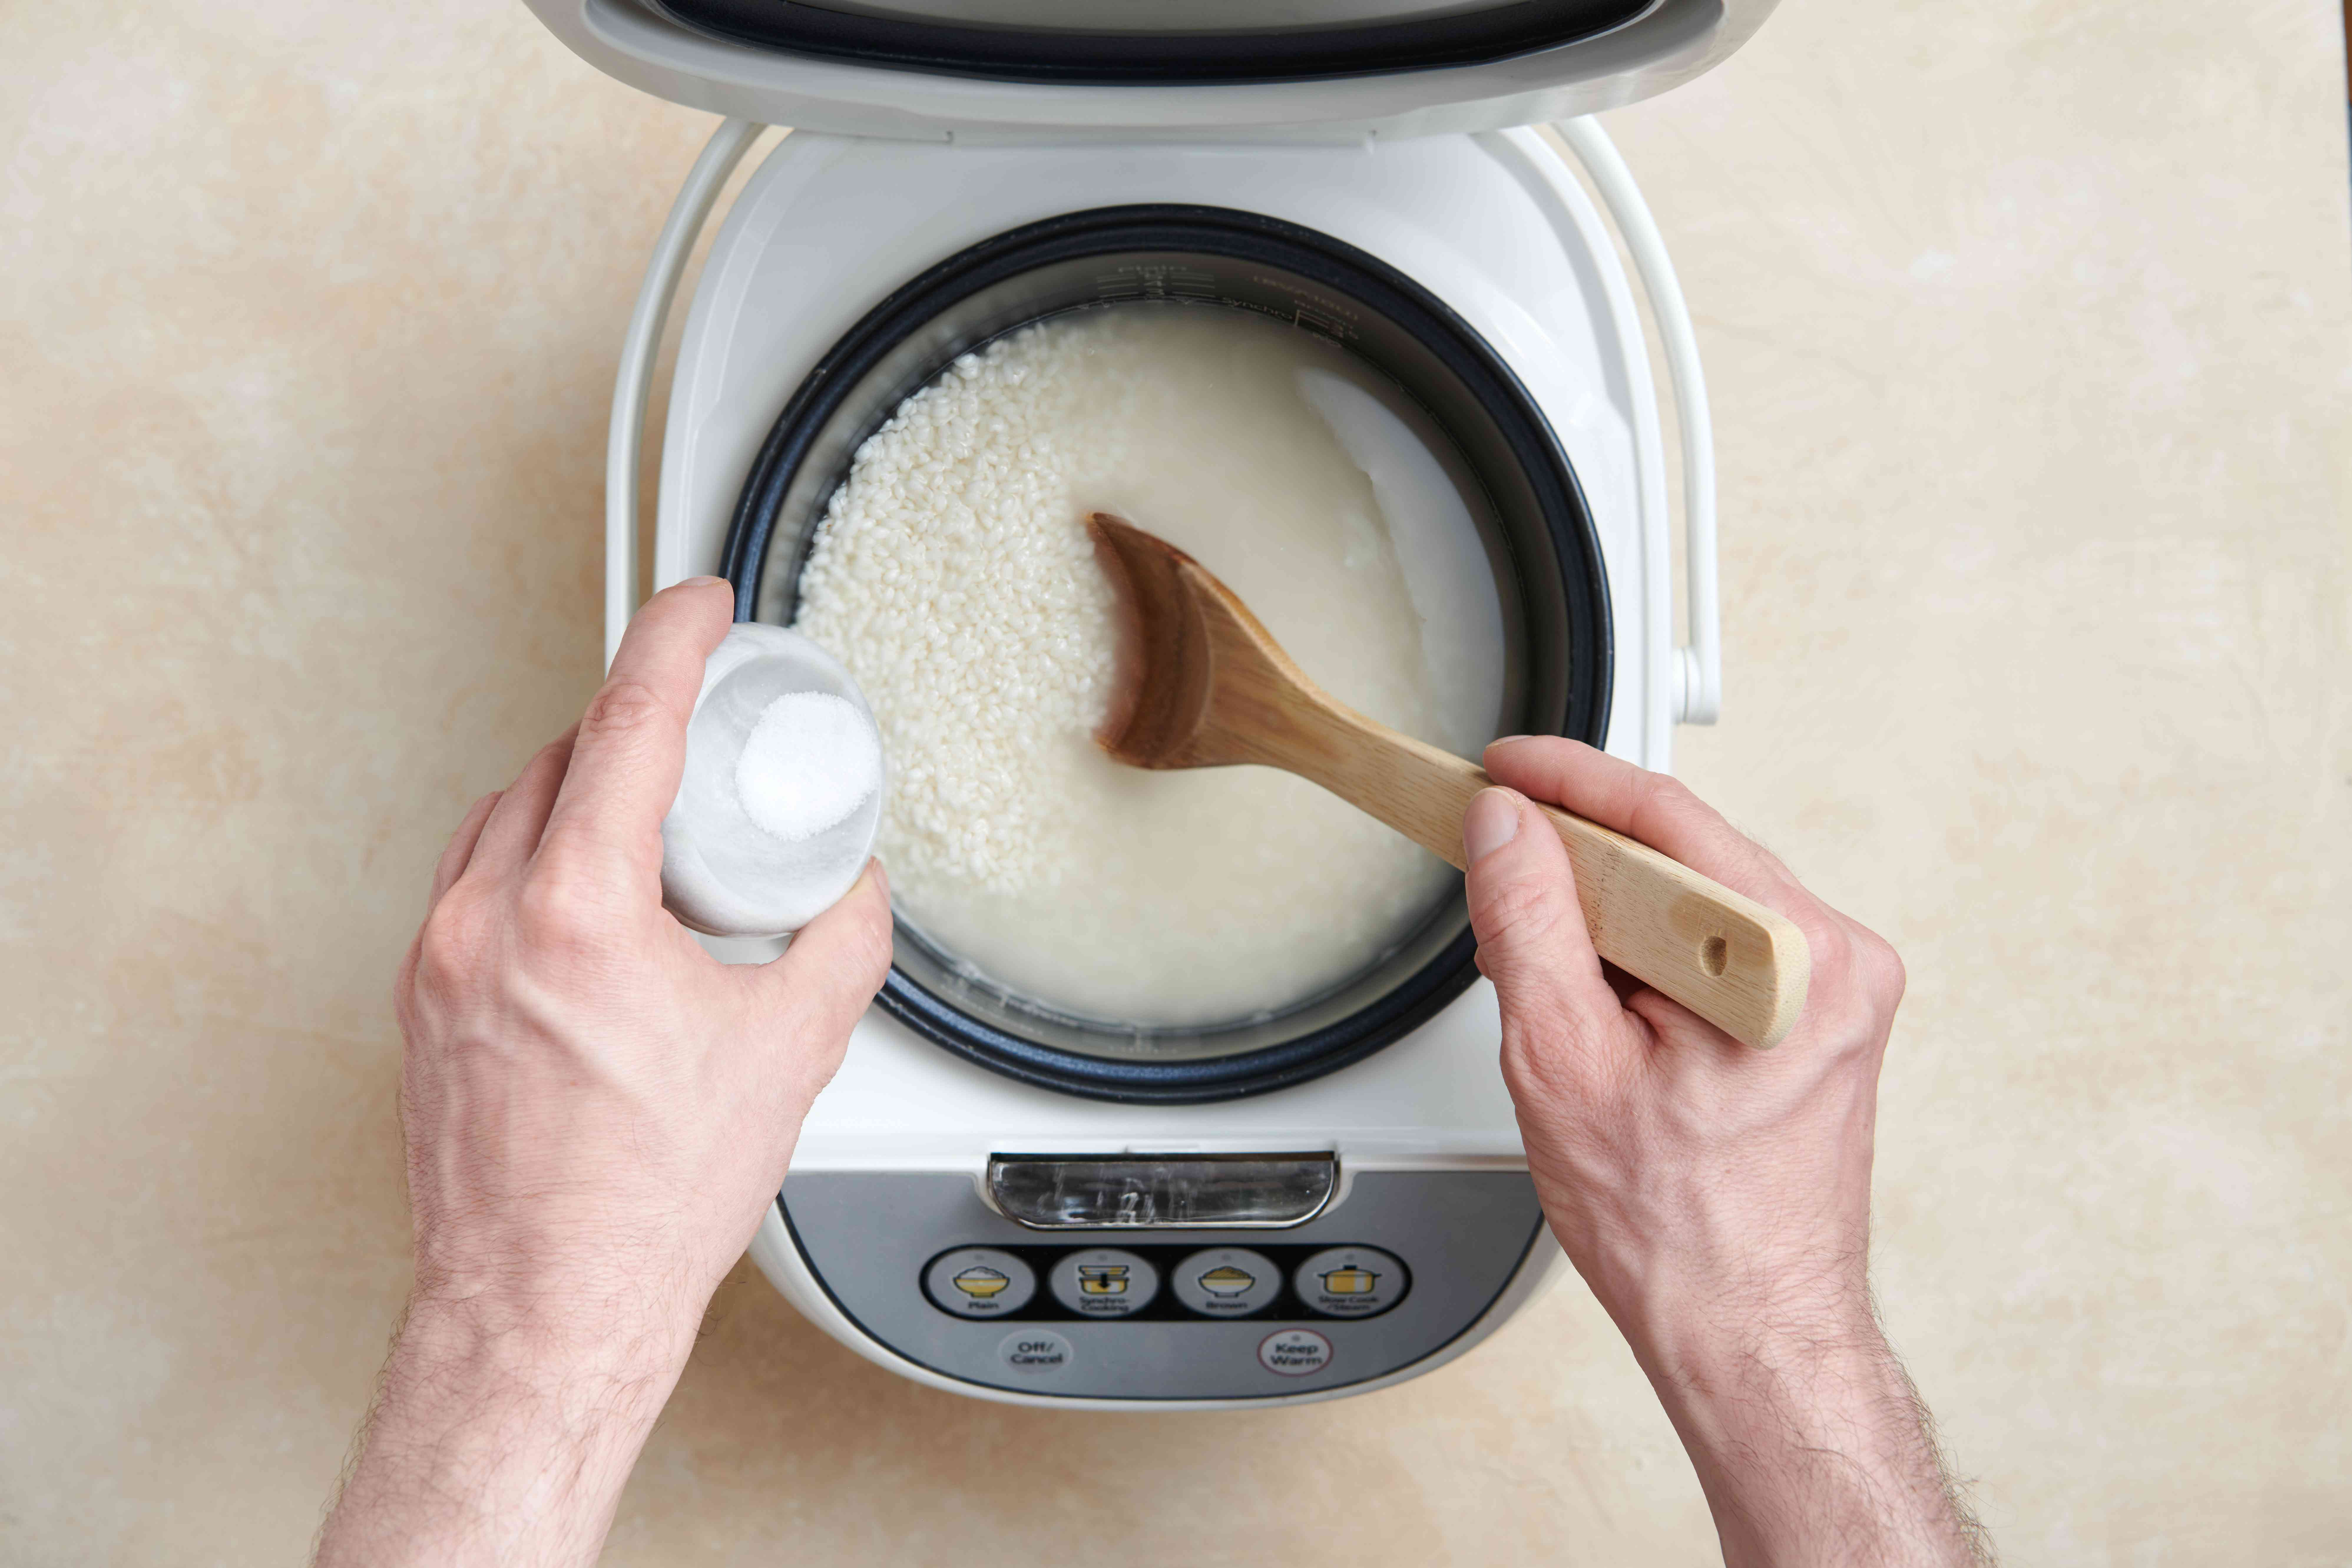 add salt to the rice in the rice cooker